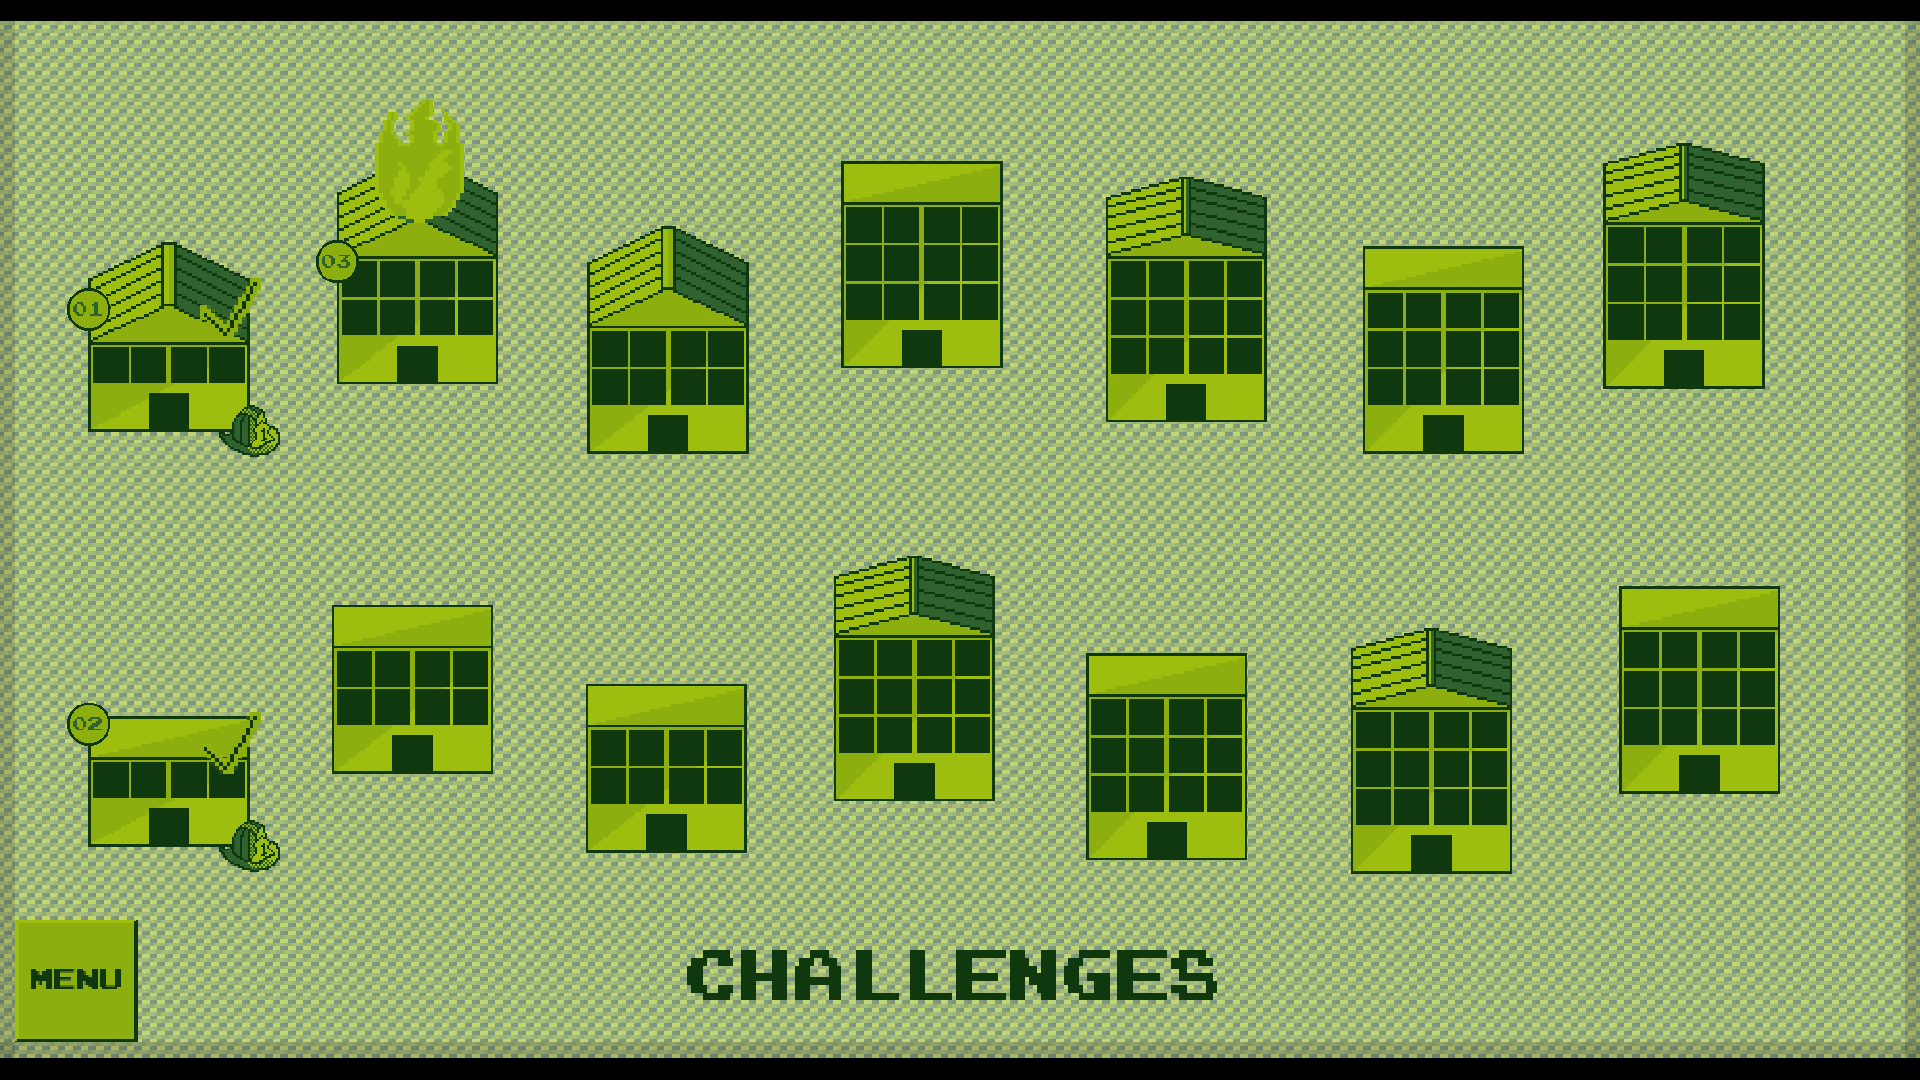 The city proposing the 14 challenges